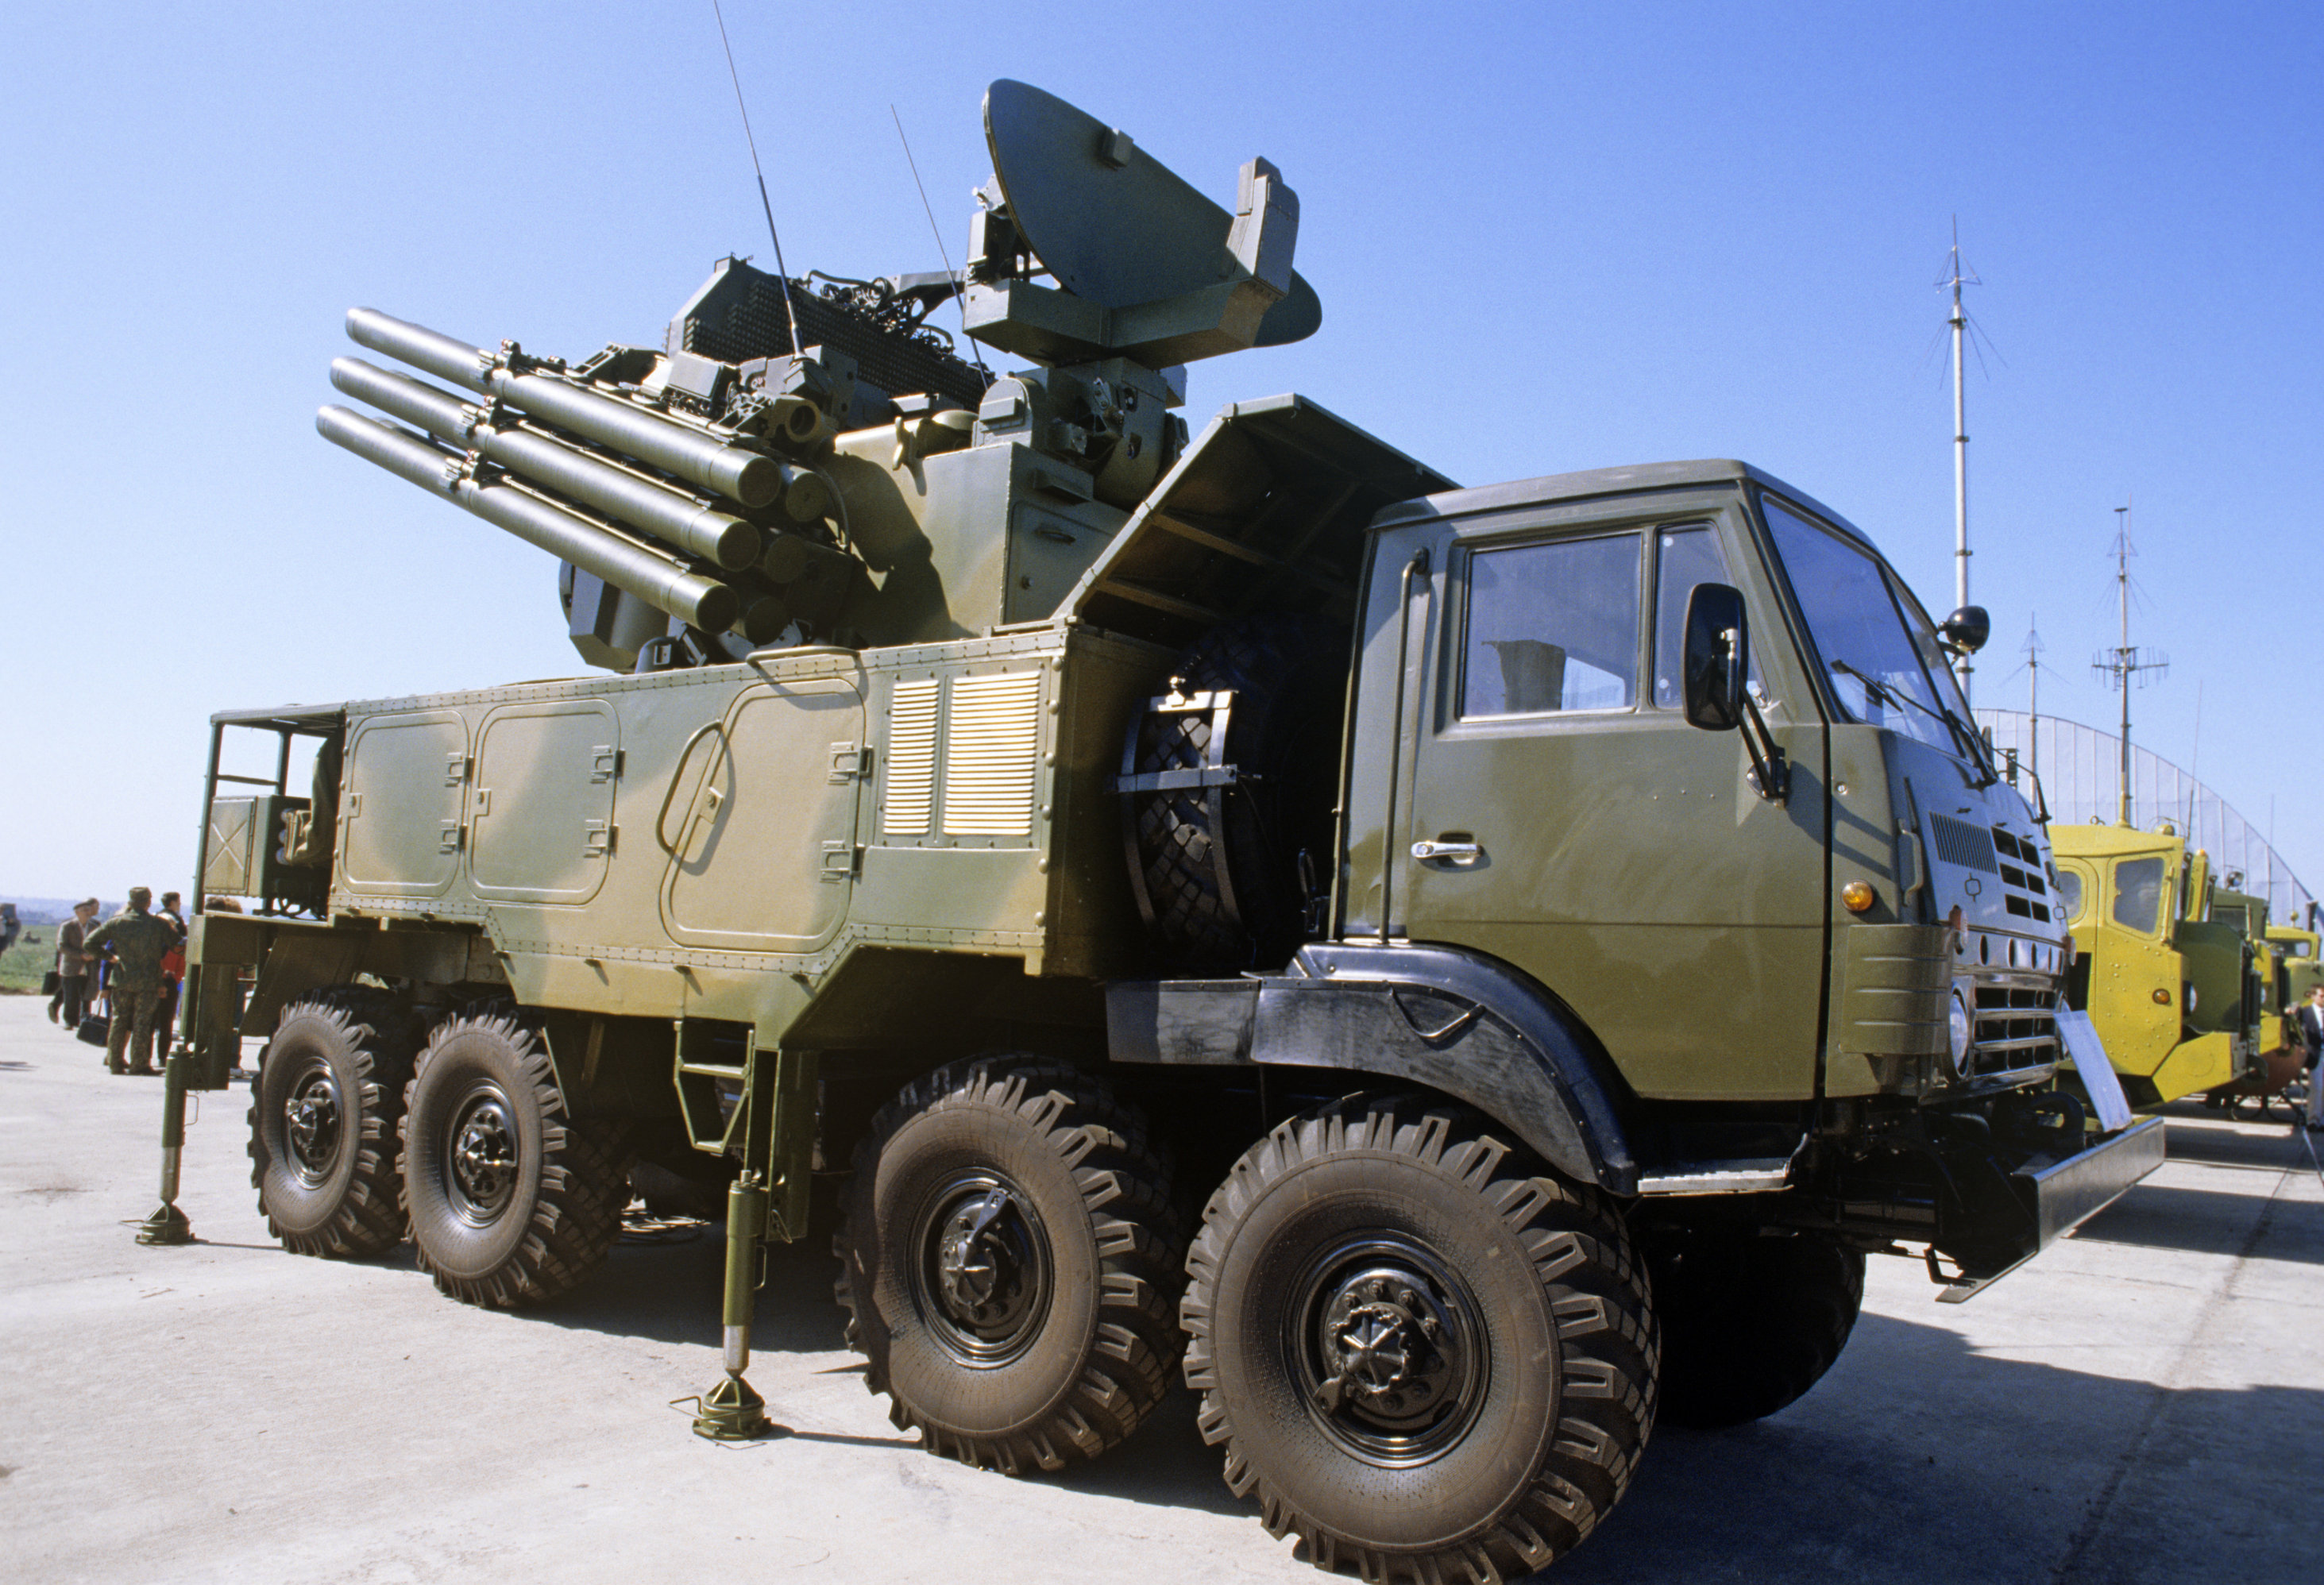 Pantsir-S1 short to medium range surface-to-air missile and anti-aircraft artillery weapon system